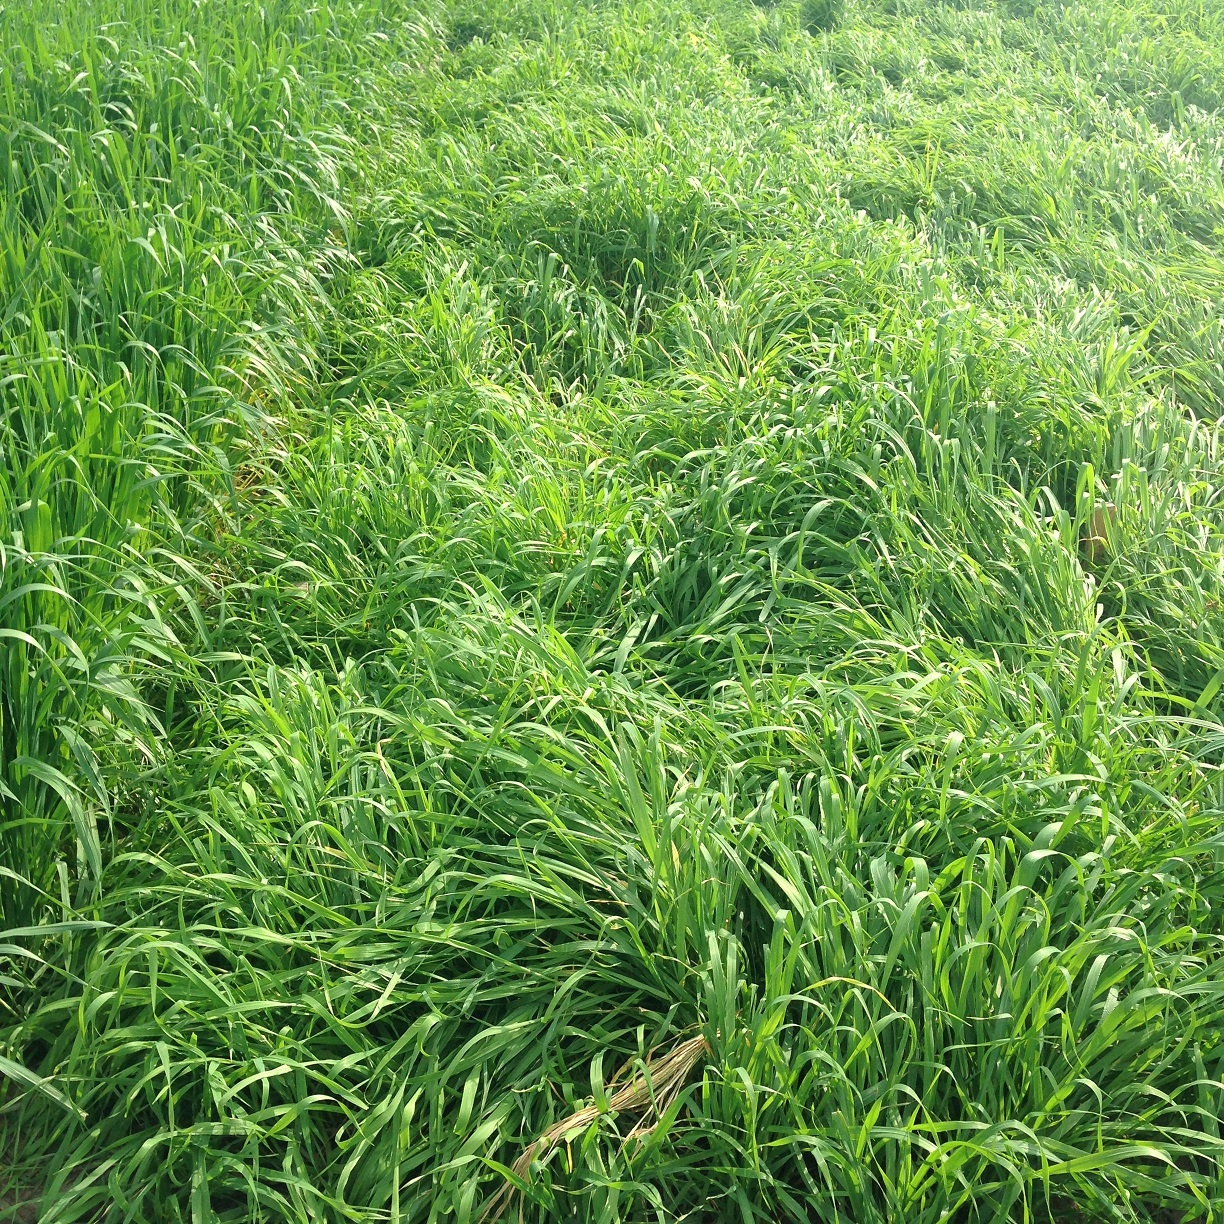 Using small grains as a dependable forage source will depend on several factors, including production potential, season of production, and winterhardiness. Photo courtesy of Daren Redfearn.